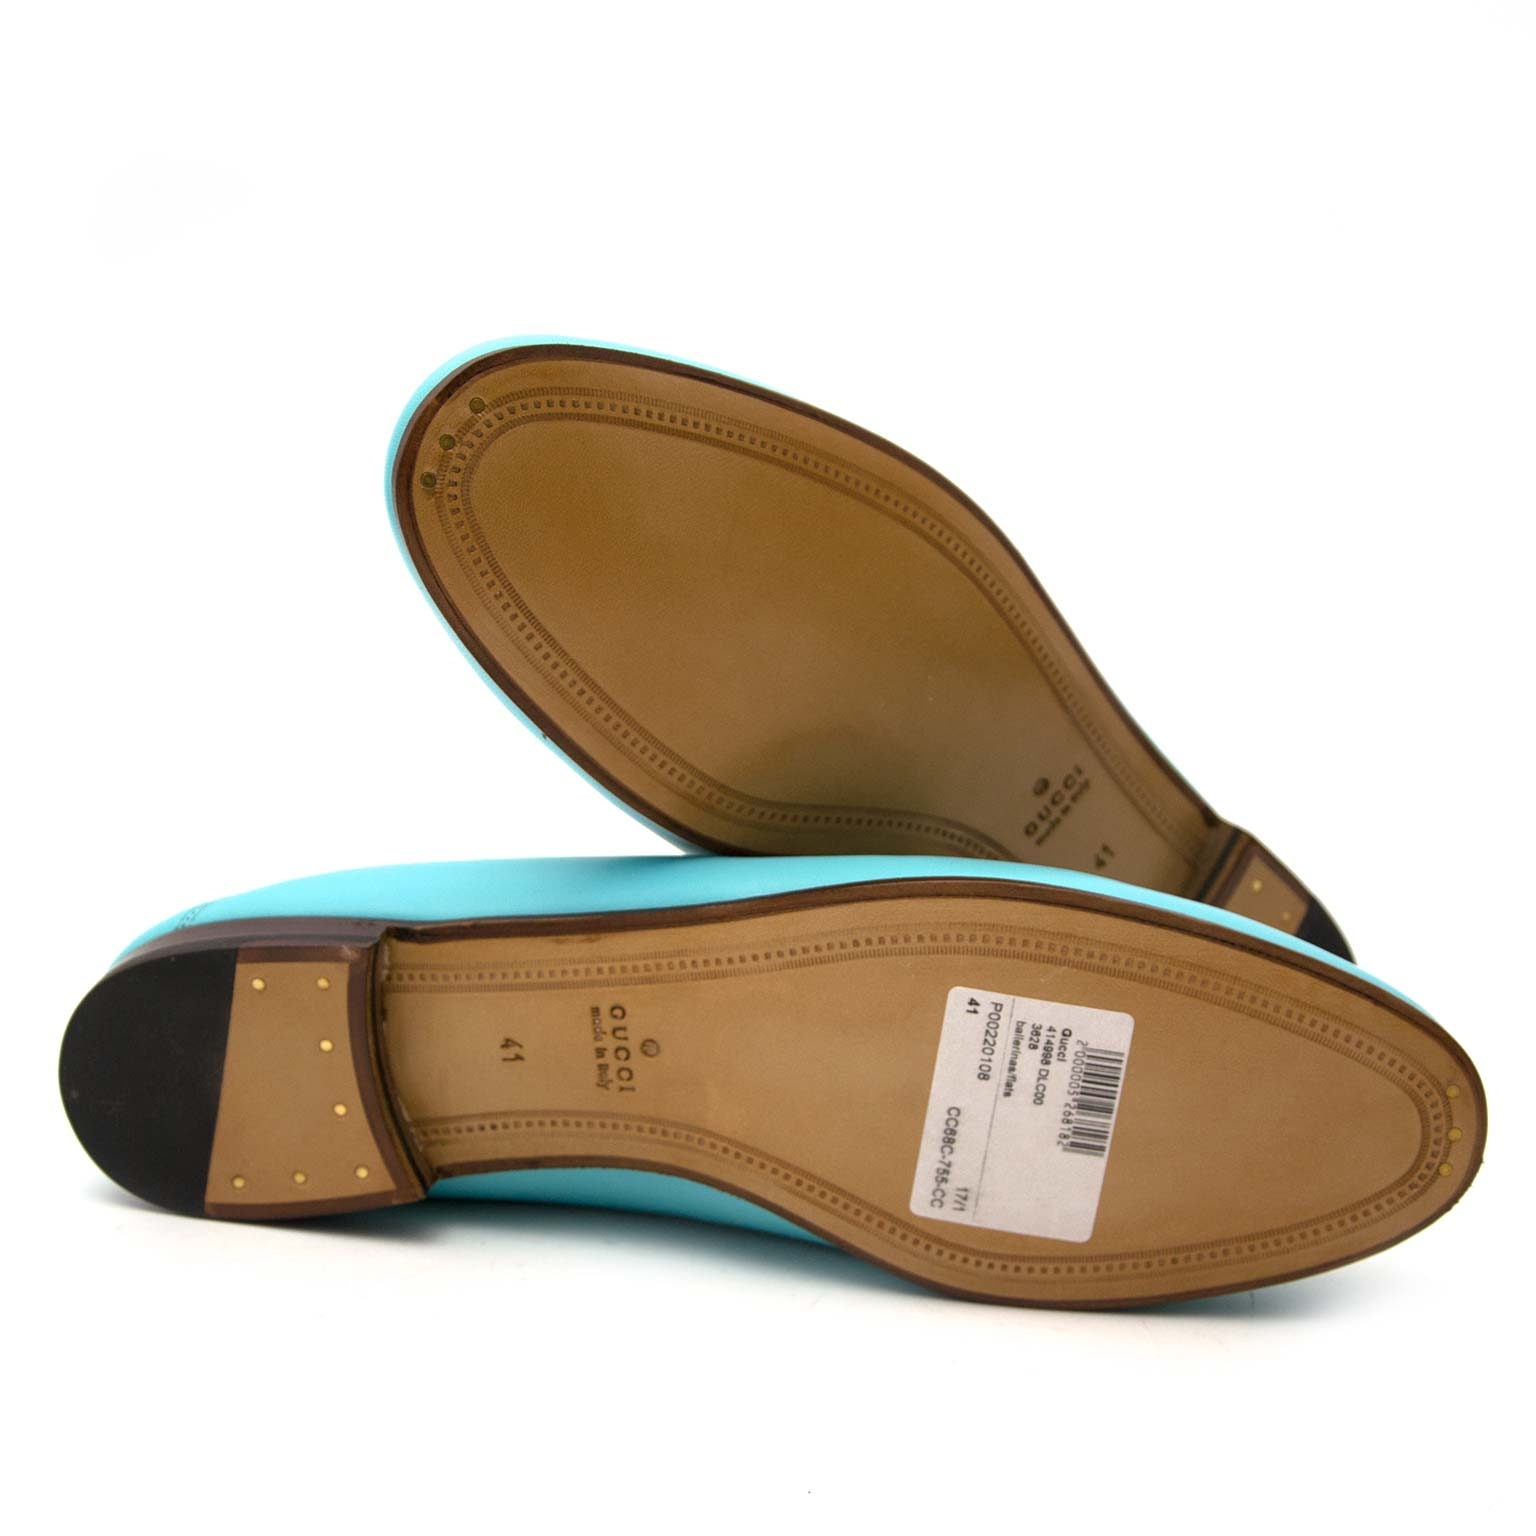 acheter en ligne seconde main *NEVER USED* Gucci Acquamarine Agnello Plongé Loafers - Size 41